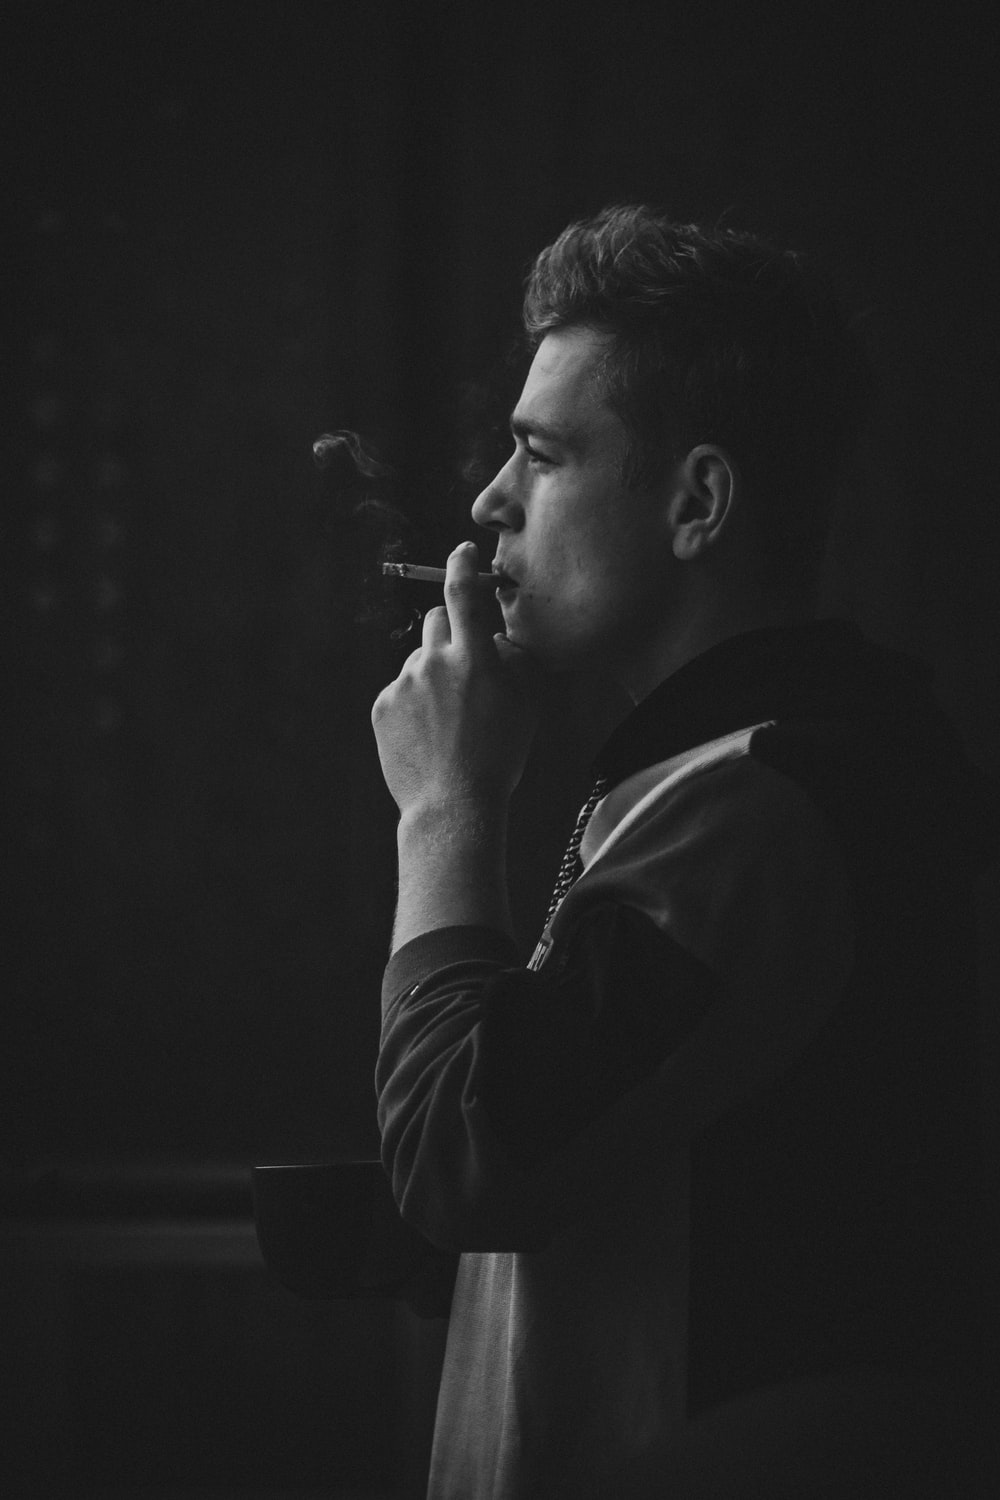 photography of man using cigarette